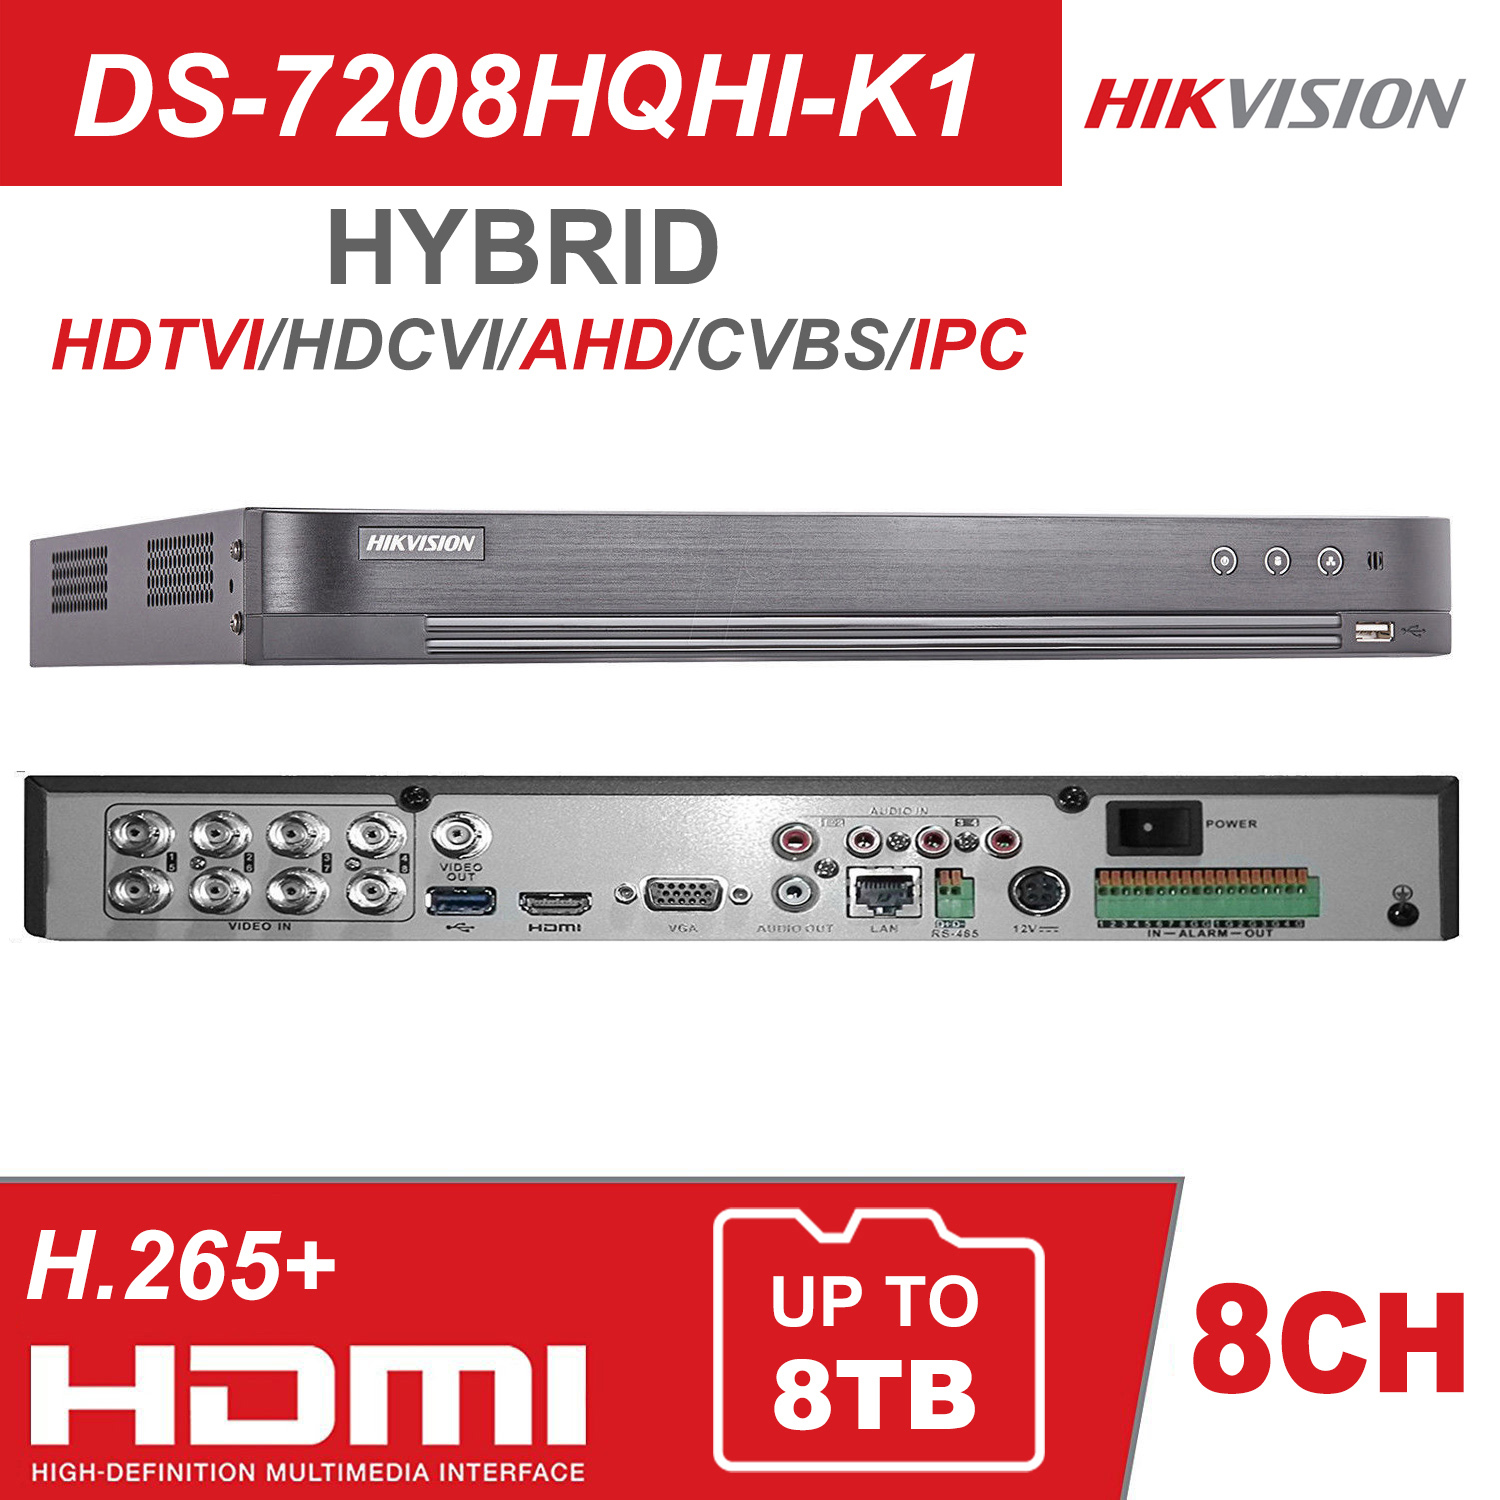 Hikvision Hybrid 4/8/16CH DVR DS-7204/08/16HQHI-K1 5 IN 1 (HDTVI/AHD /CVI/CVBS/IP) h.265 Pro + Digital Video Recorder 1HDD unterstützung